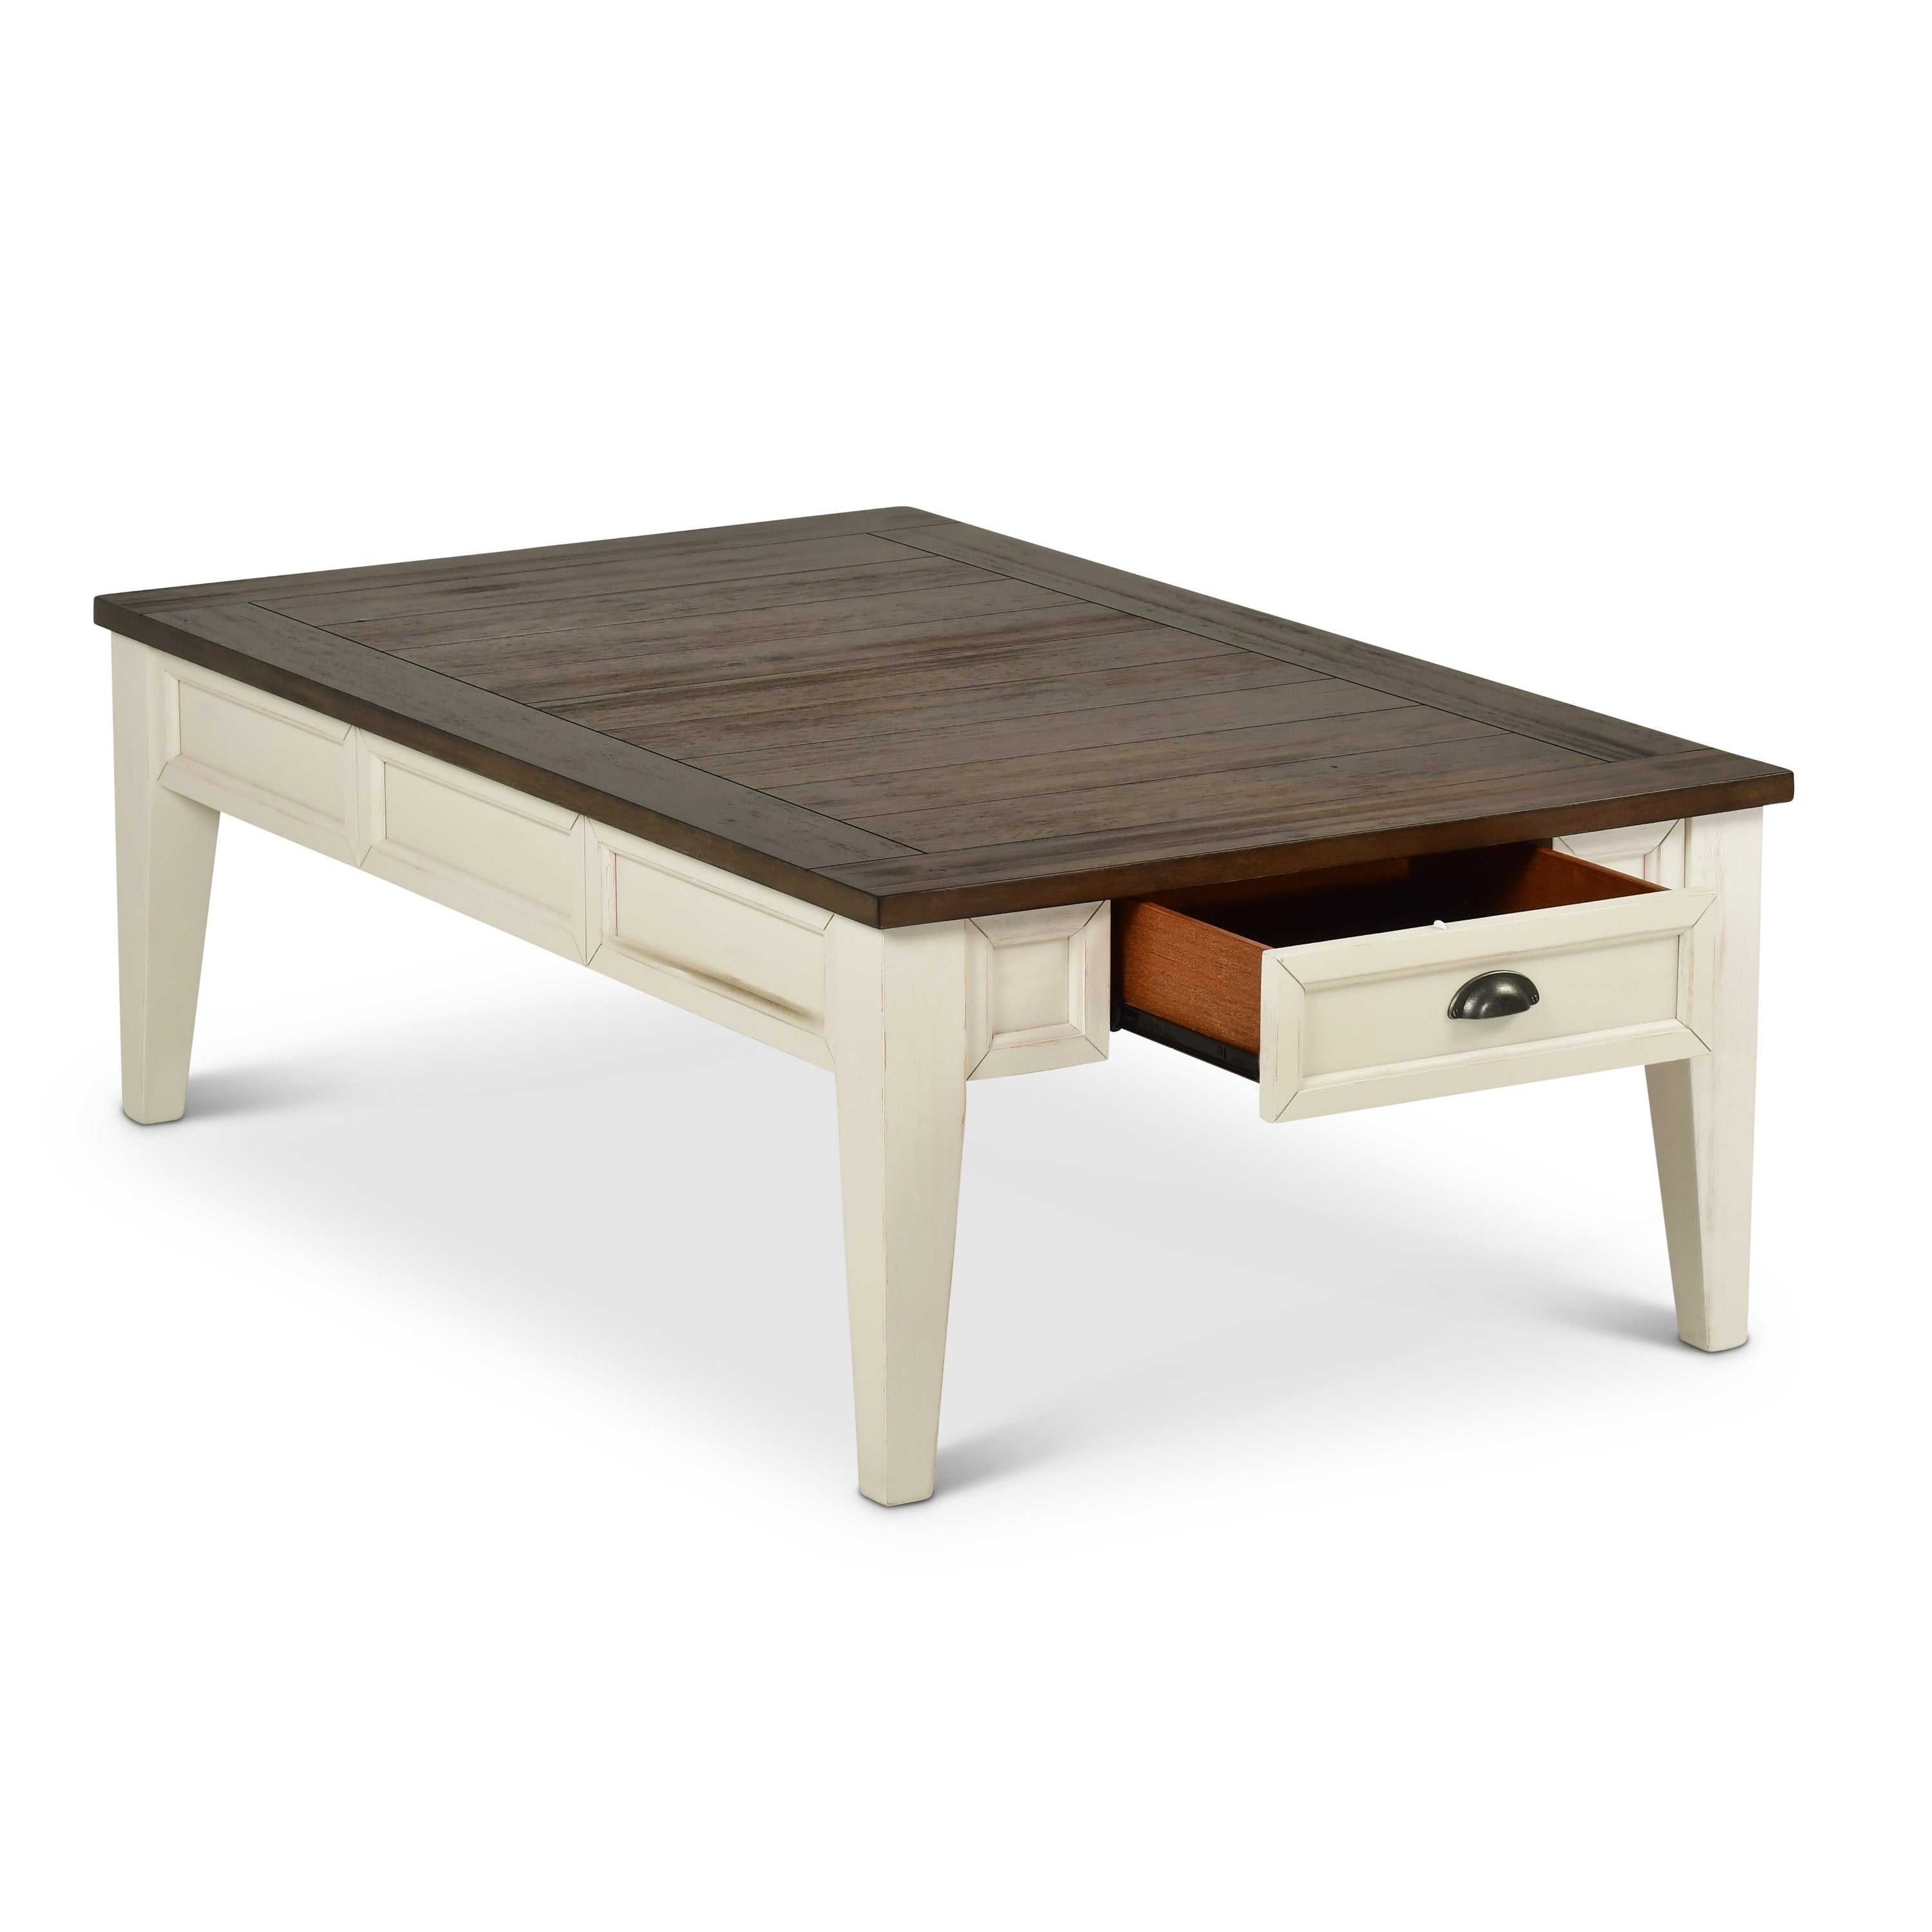 Shop cottonville two tone coffee table with storage by greyson living free shipping today overstock com 19789757